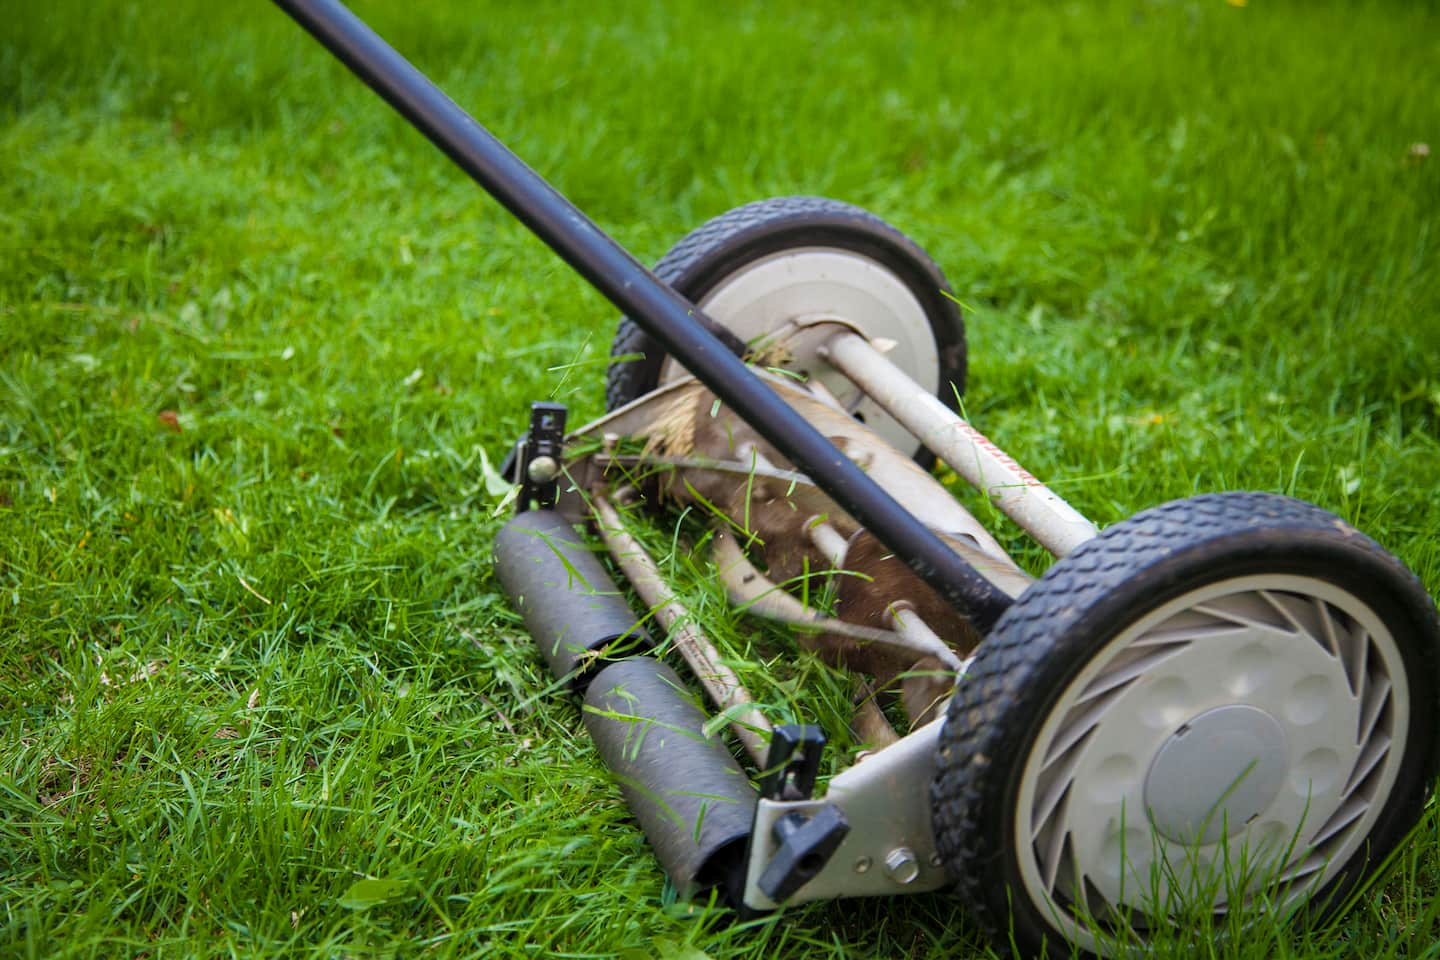 Lawn tractor head gasket repair update youtube - Is A Reel Lawn Mower Right For You